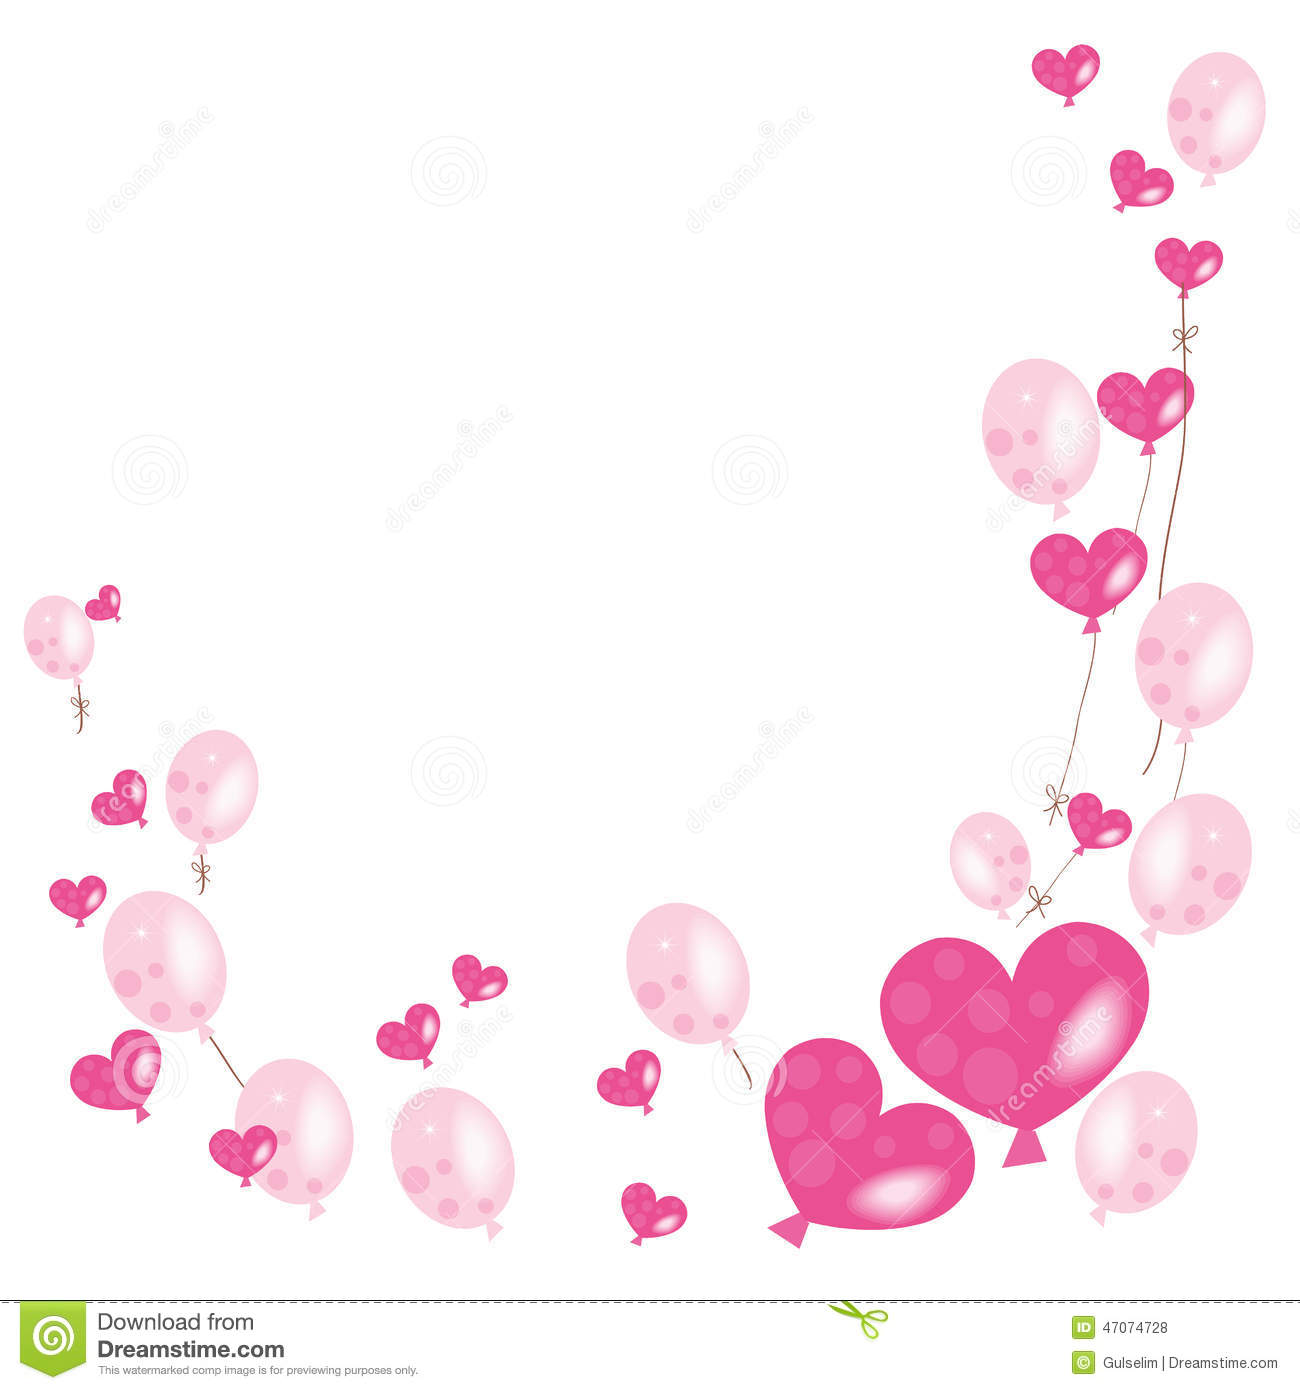 Cartoon Balloon Images Stock Photos amp Vectors  Shutterstock